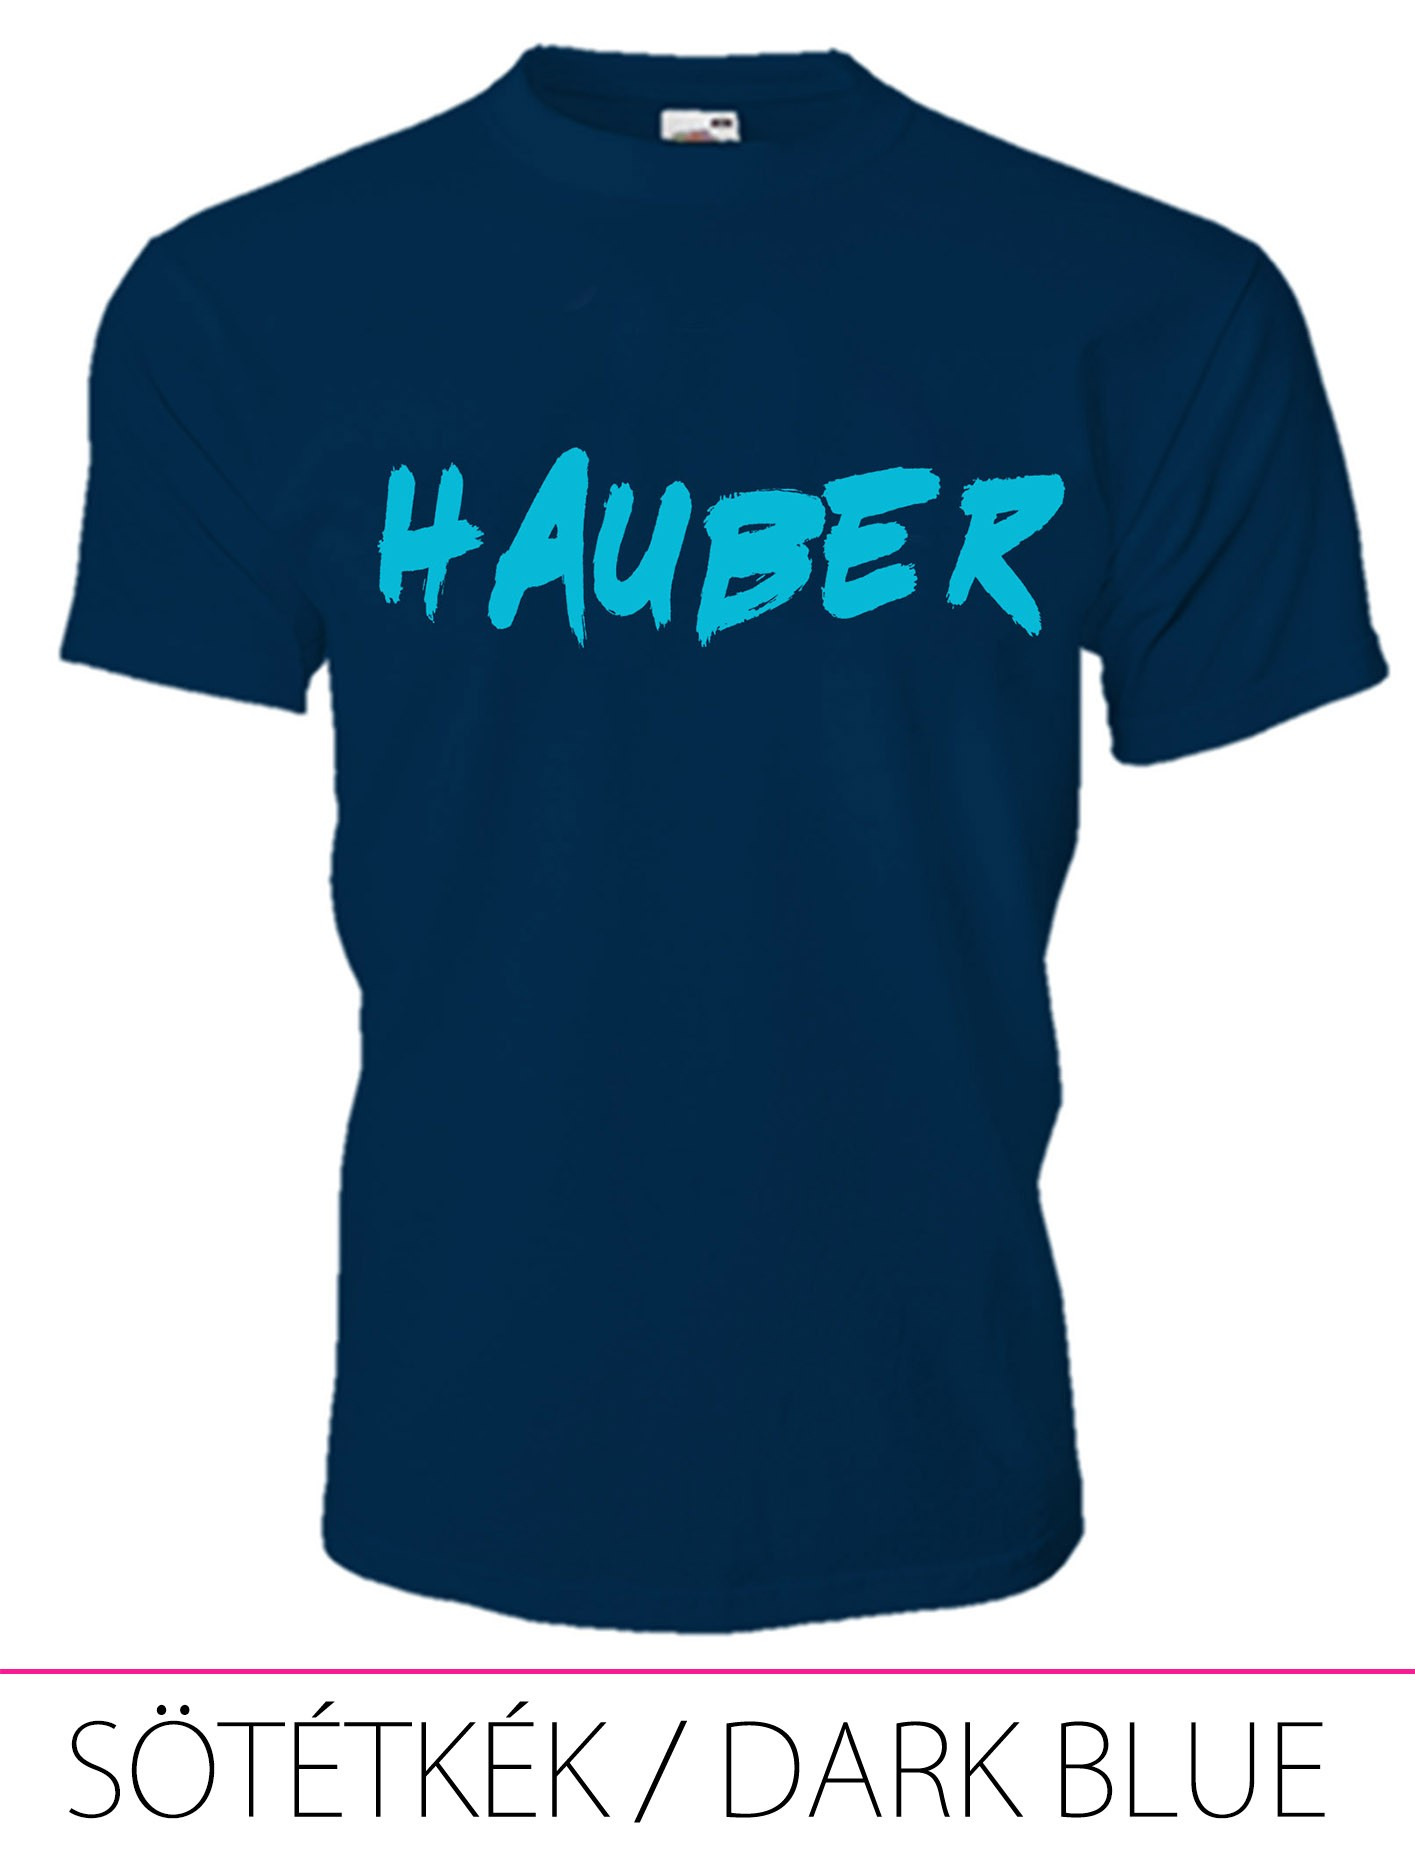 KIDS CREW NECK T-SHIRT HAUBER DARK BLUE